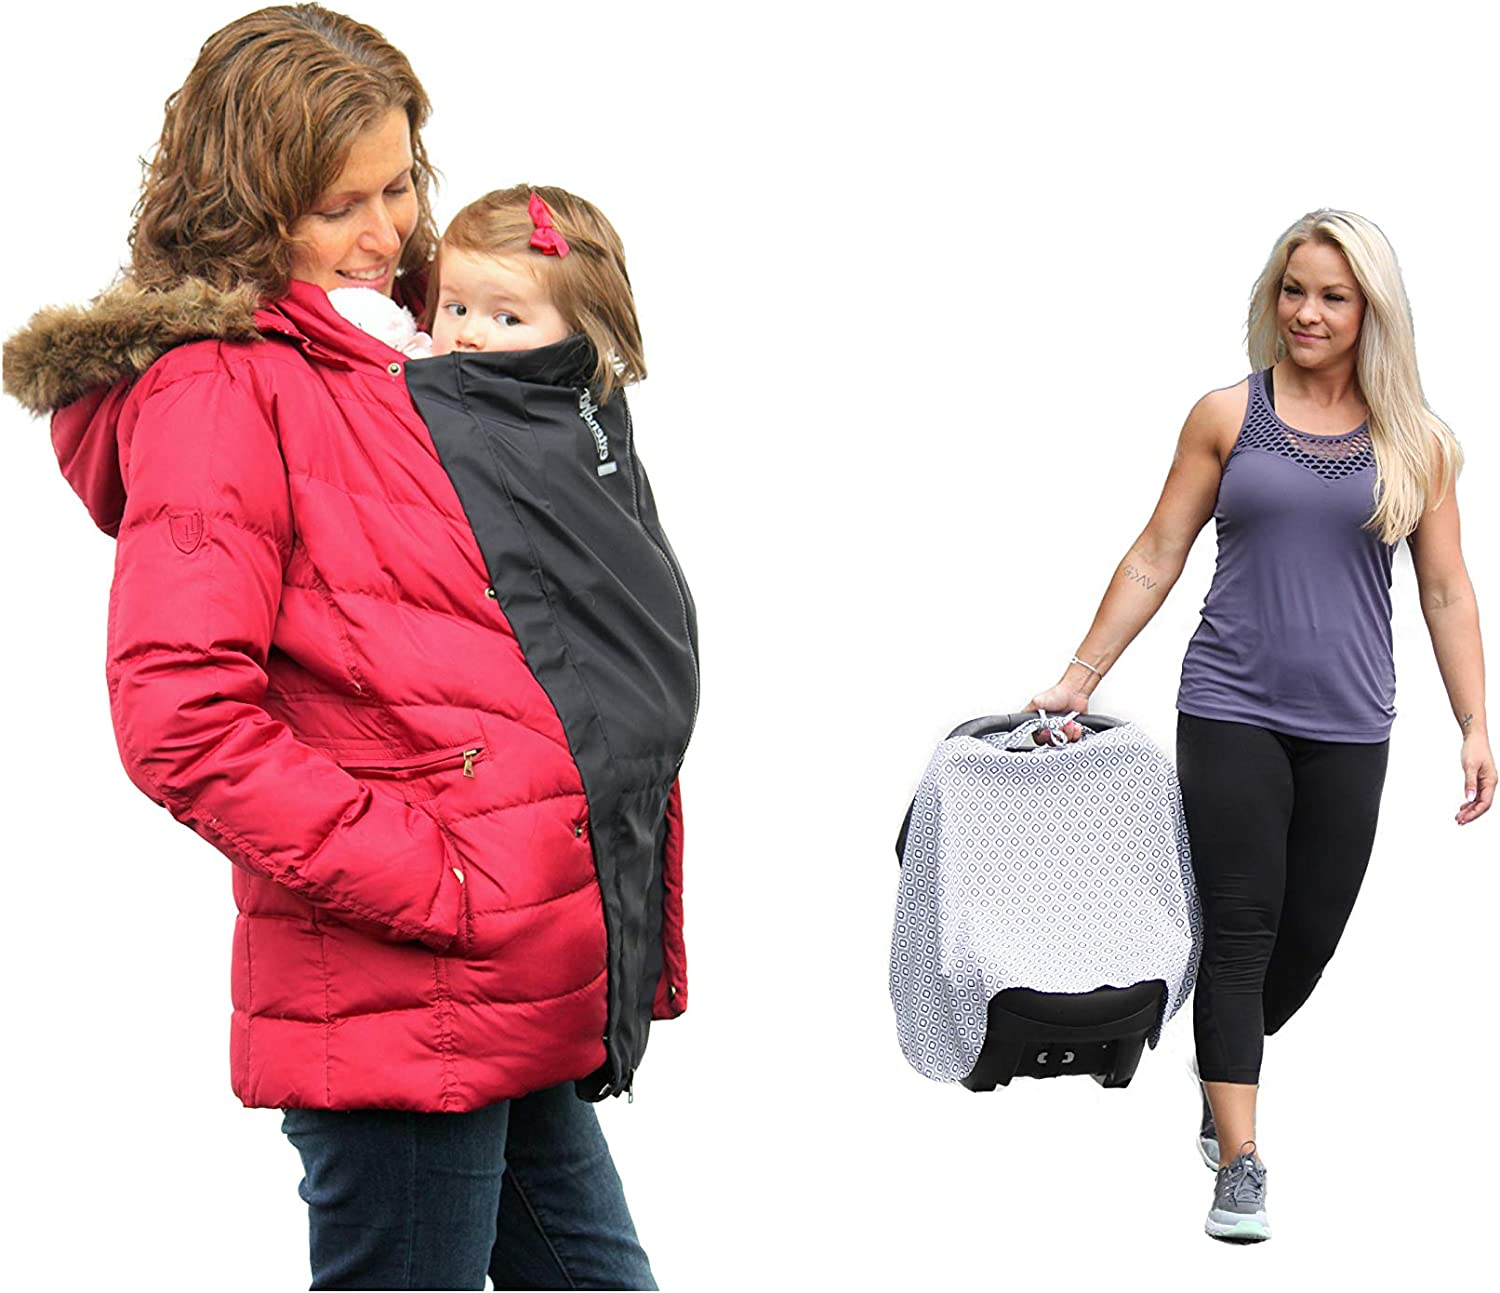 Extendher Maternity Coat Alternative + Baby Cover. Jacket Extender Lined with Polartec Fleece, Nylon Outer Shell, for Zip Up Coats + CoverUp for Babywearing, Nursing, Stroller & Car Seat (Black)